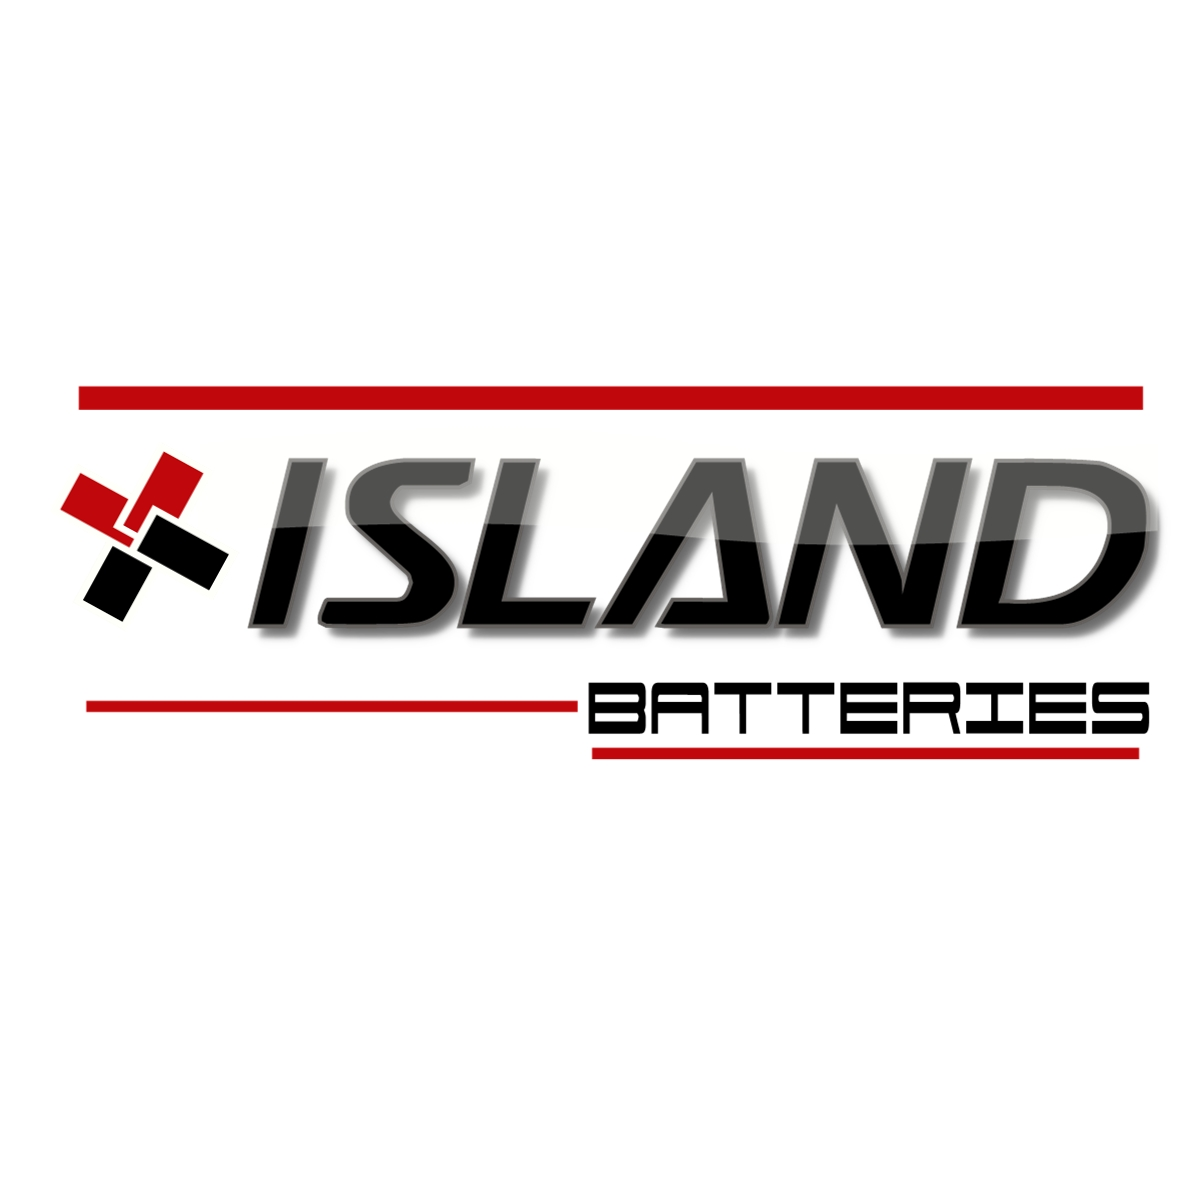 Logo Design by Joseph calunsag Cagaanan - Entry No. 18 in the Logo Design Contest Fun Logo Design for Island Batteries.